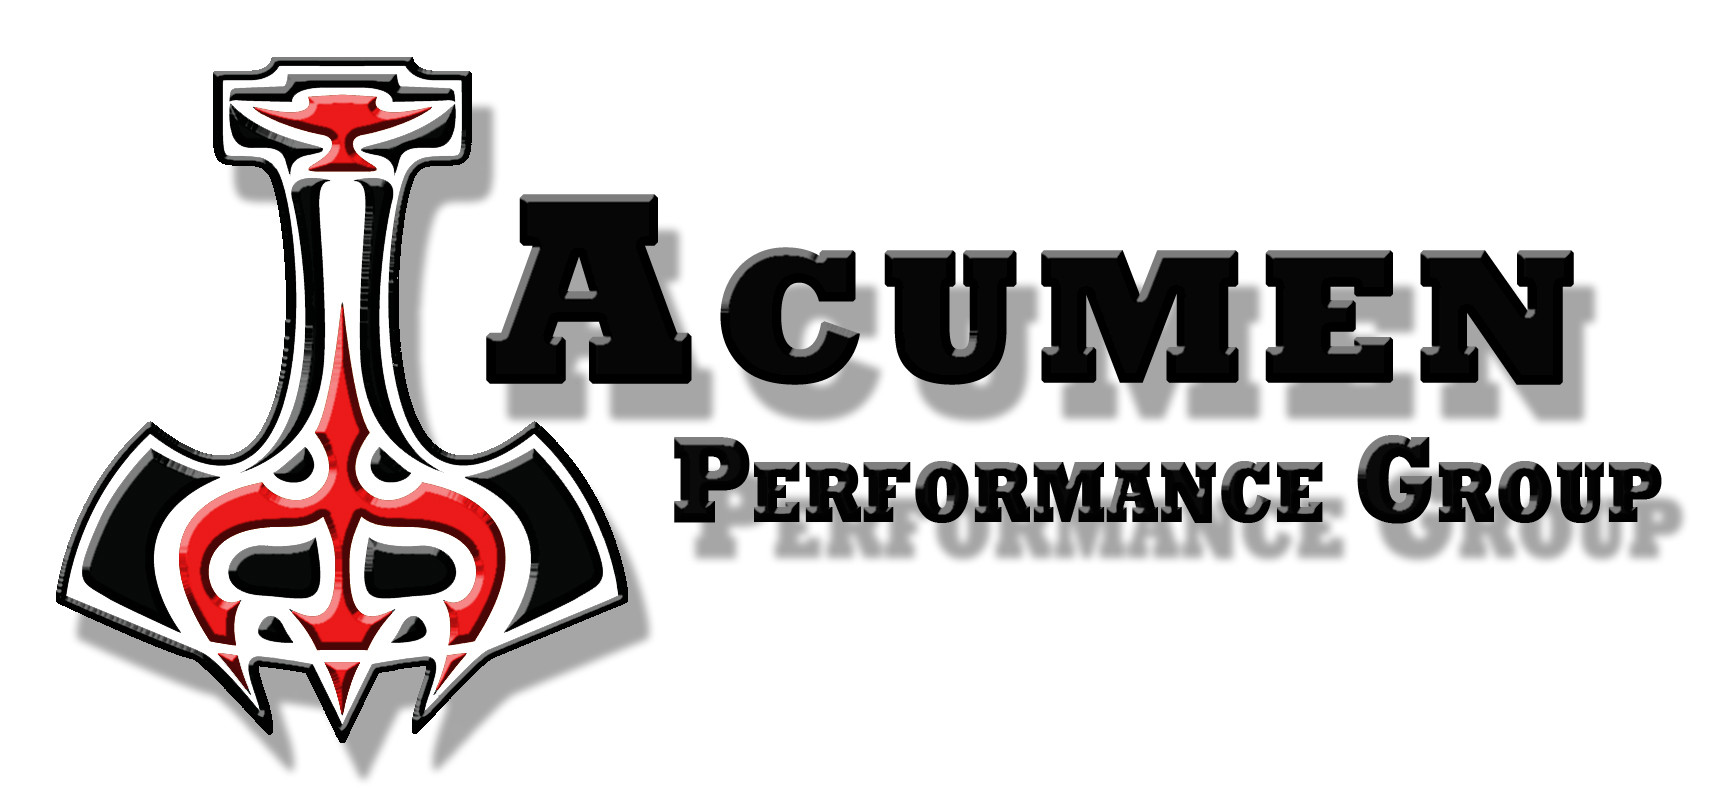 Corporate| Acumen Performance Group